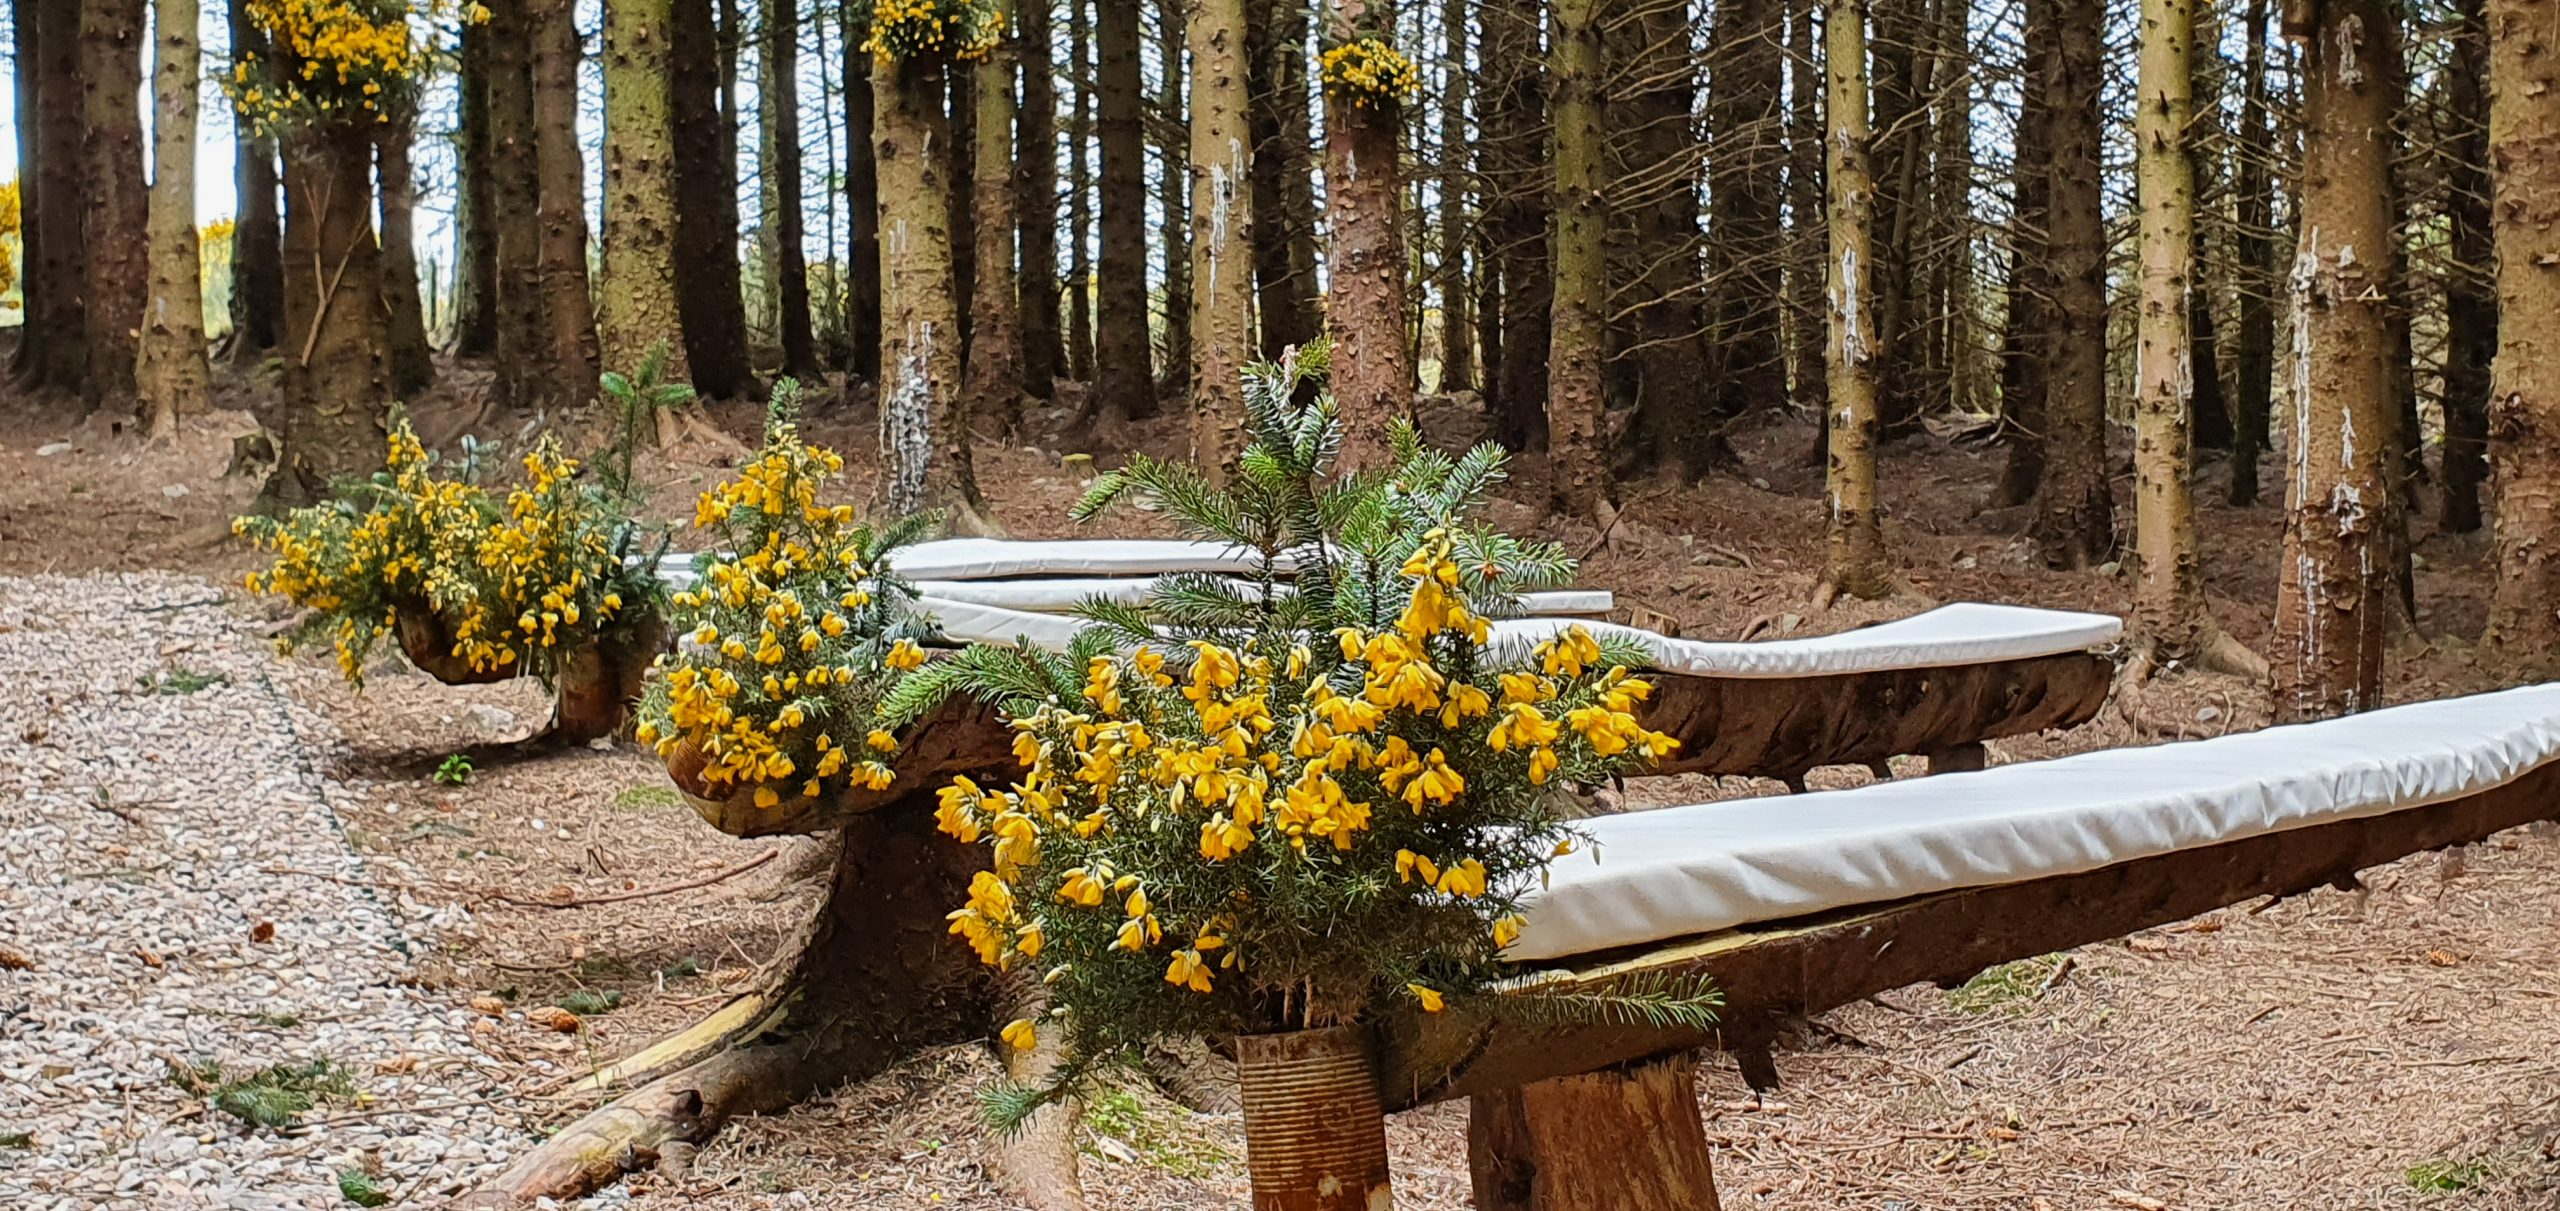 woodland cathedral festooned with gorgeous yellow flowers